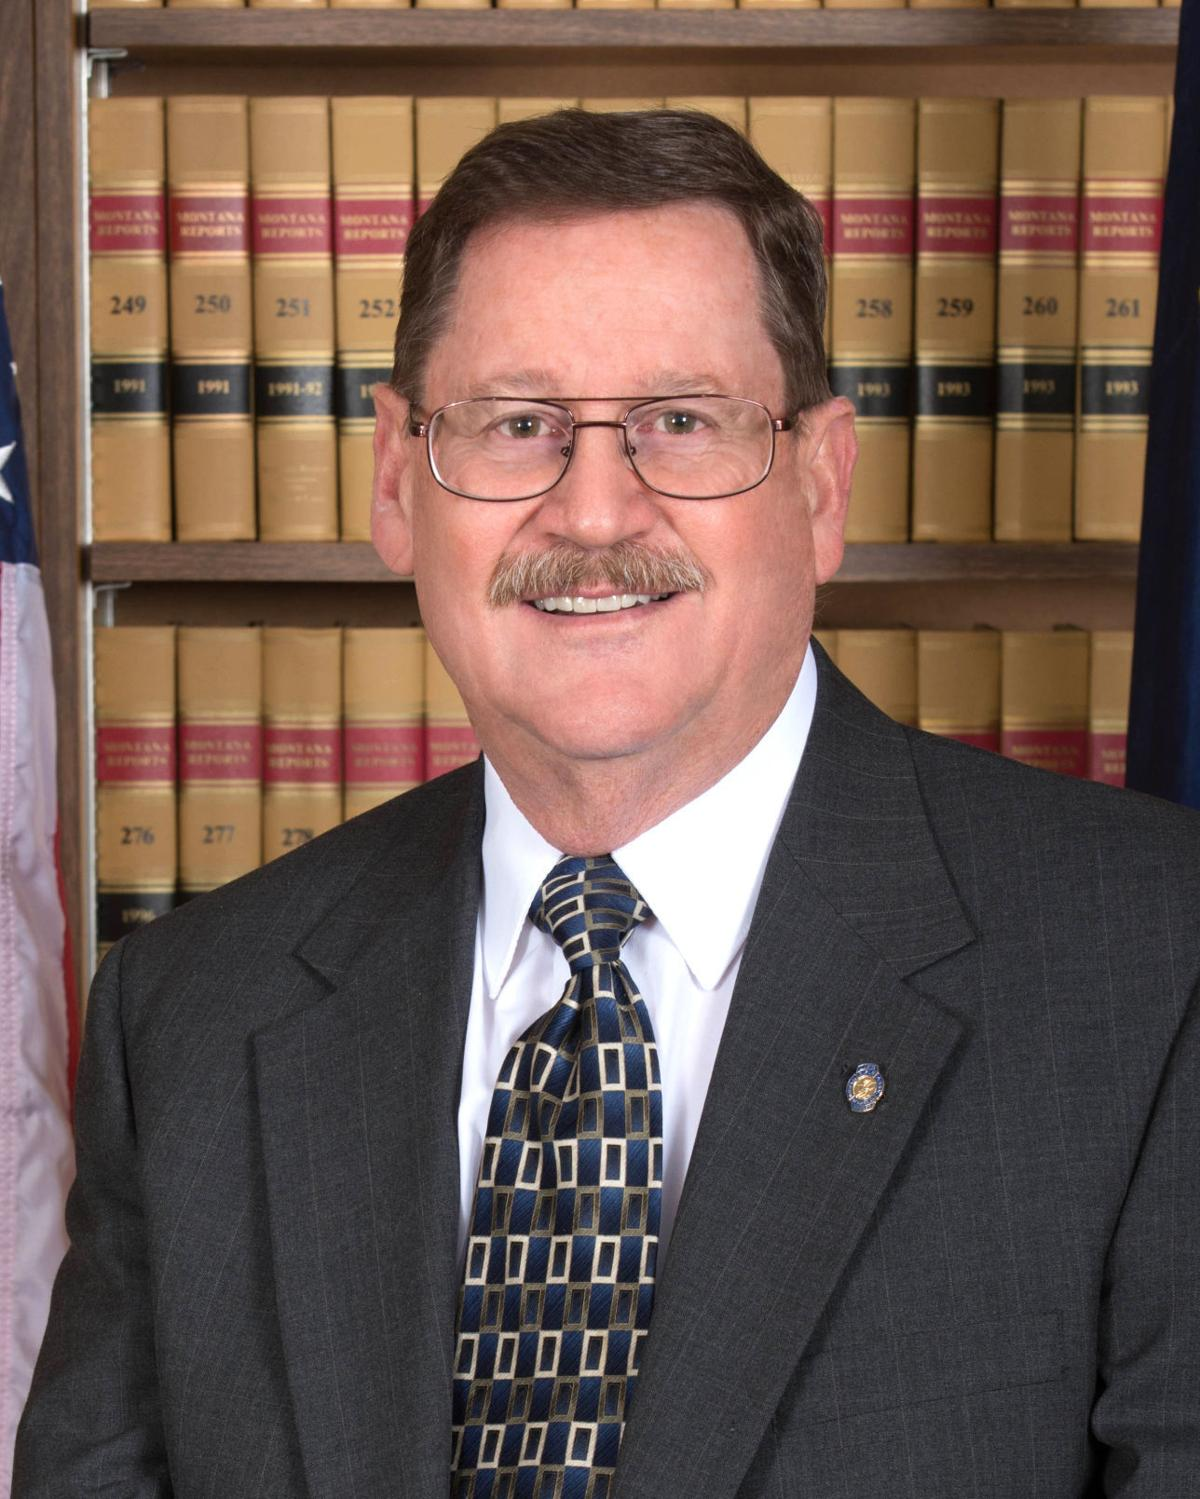 Tony O'Donnell, District 2, Public Service Commission